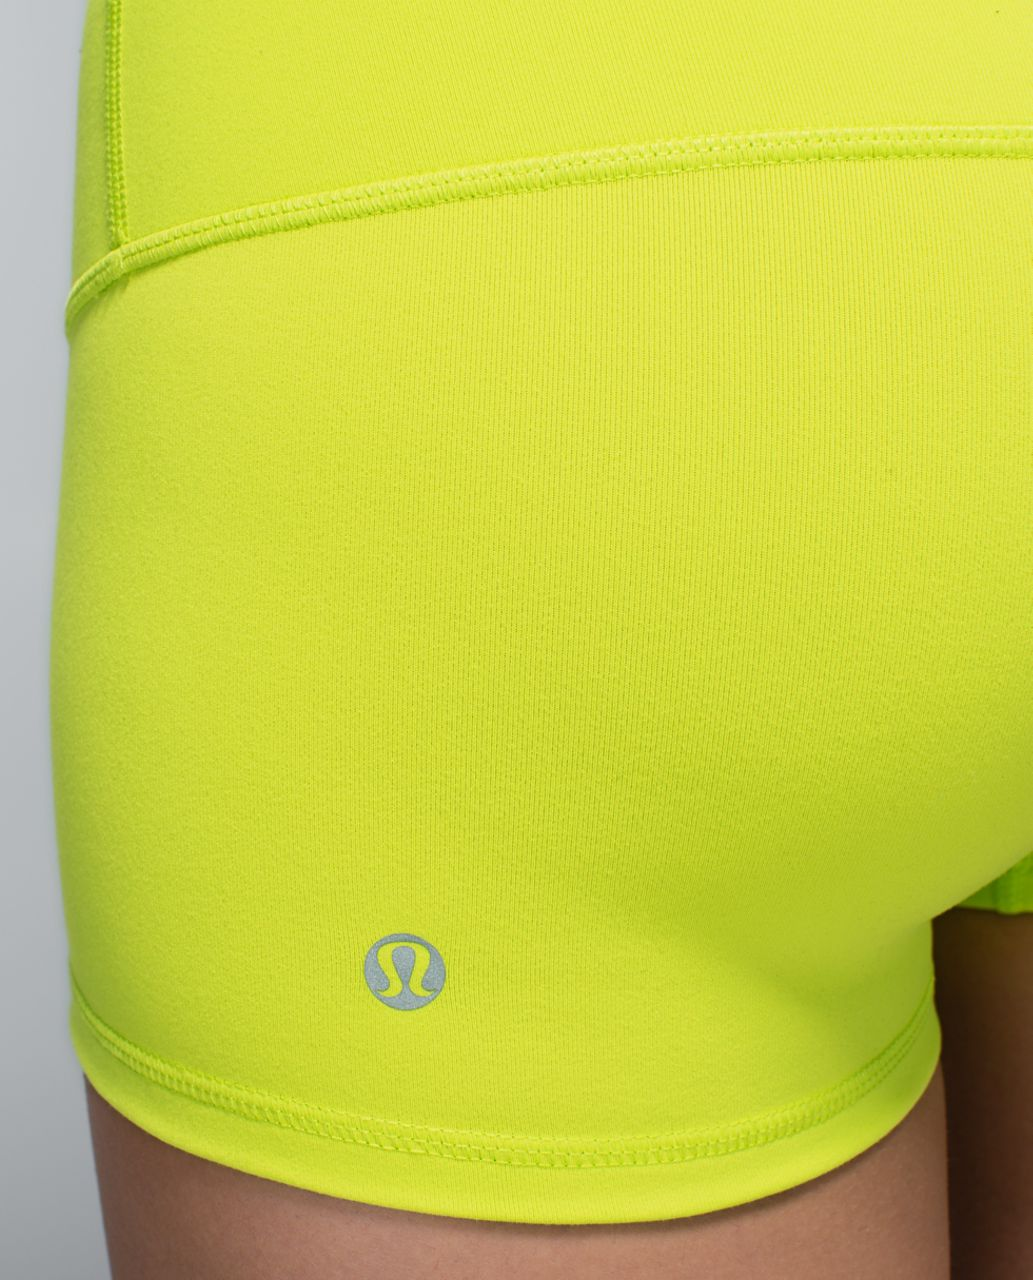 Lululemon Boogie Short *Full-On Luon - Antidote